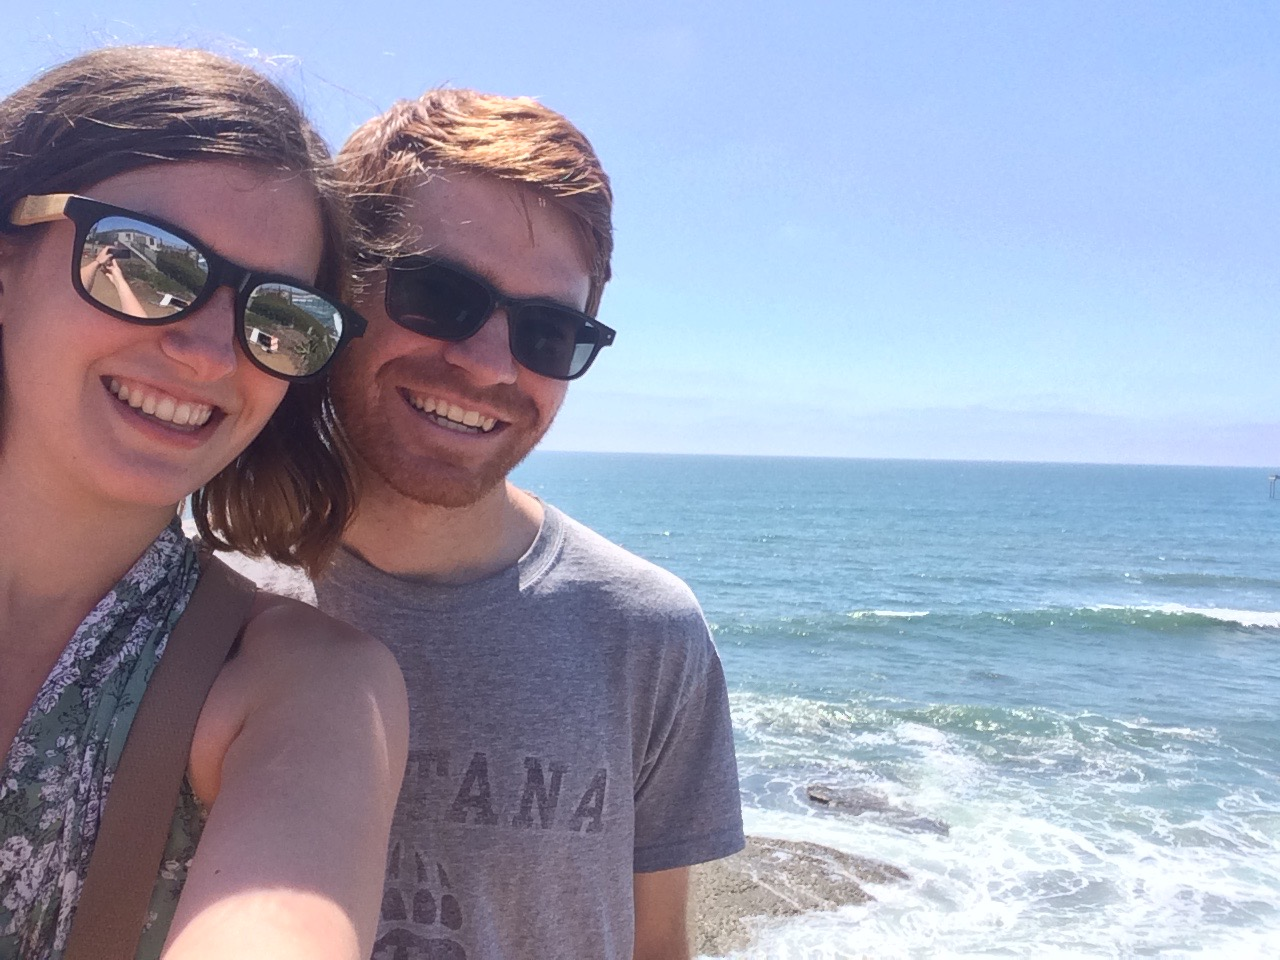 Co-founders Taylor and Brandon enjoying life while visiting the Pacific Ocean.